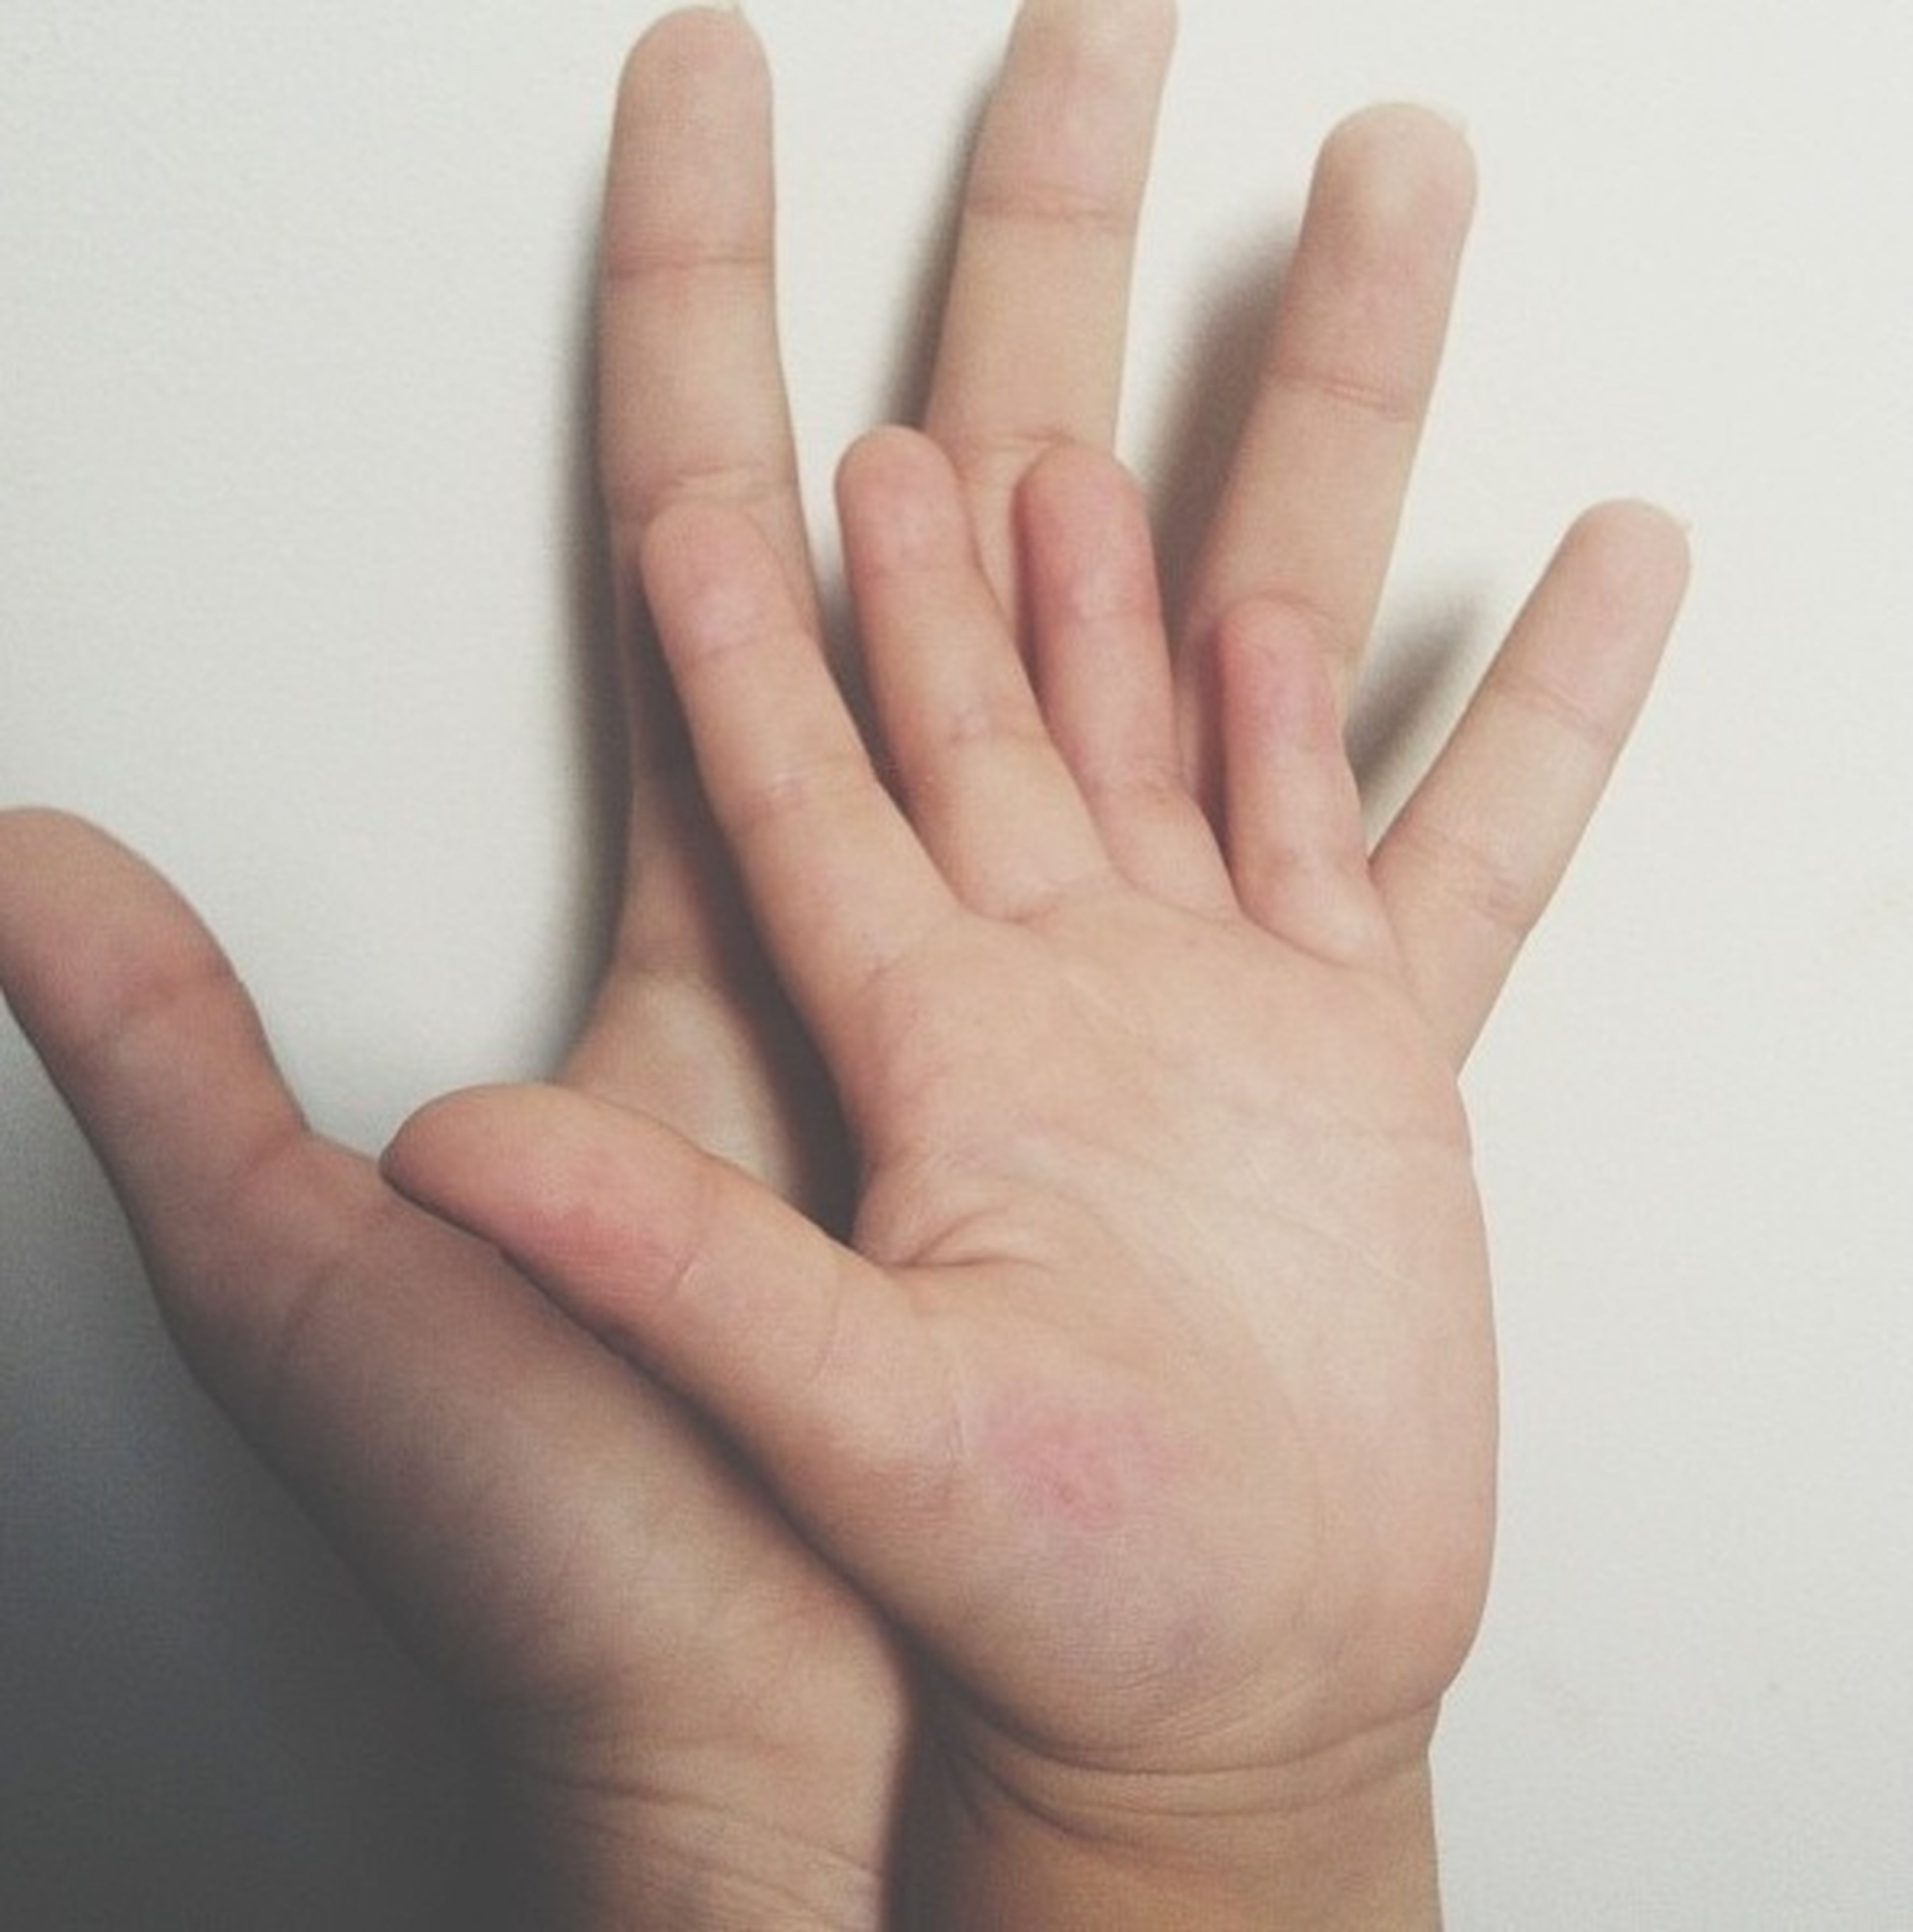 person, human finger, part of, cropped, white background, studio shot, holding, close-up, unrecognizable person, copy space, personal perspective, palm, indoors, showing, lifestyles, men